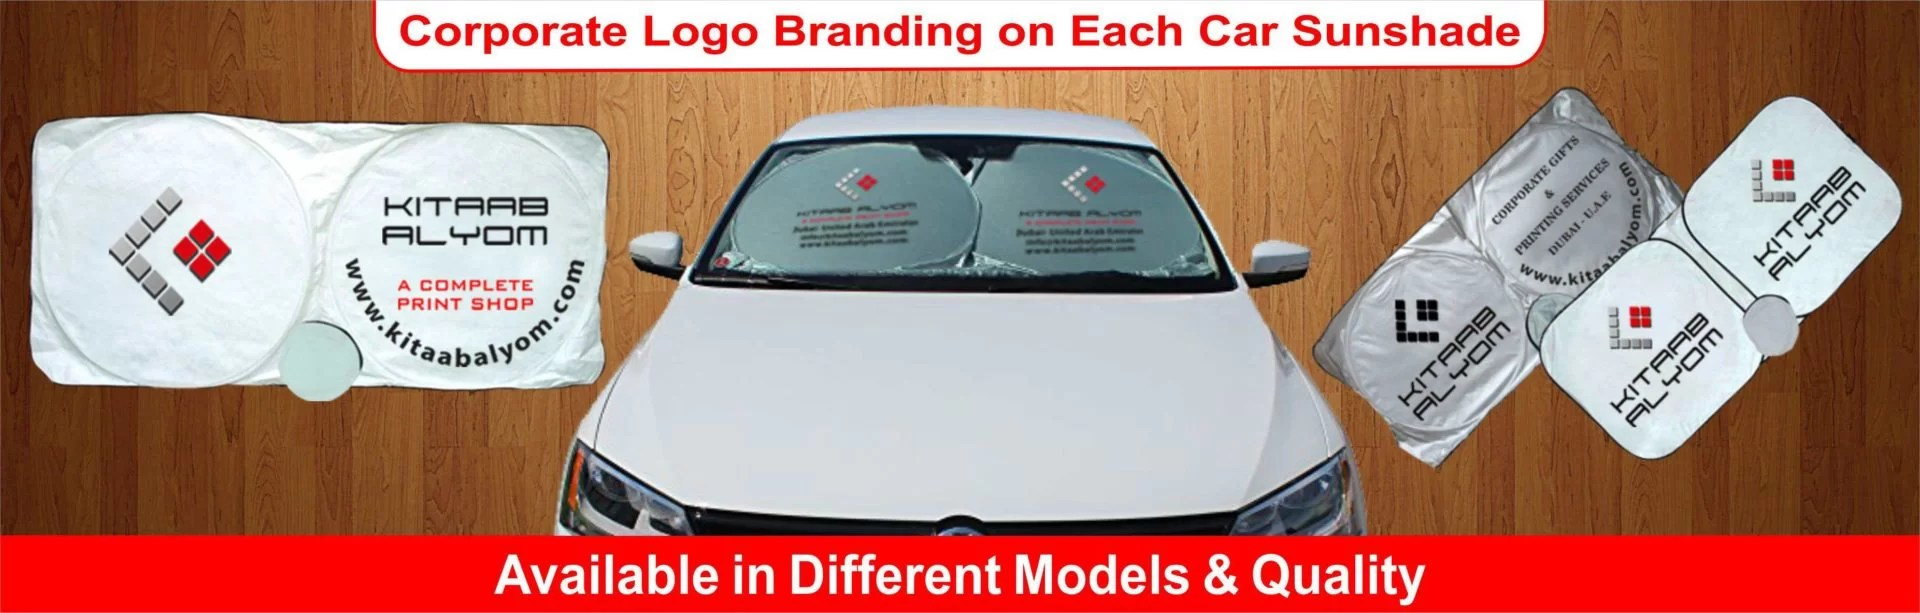 Car Sunshades Printing in Dubai, Car Sunshades, Print Car Sunshades in Dubai